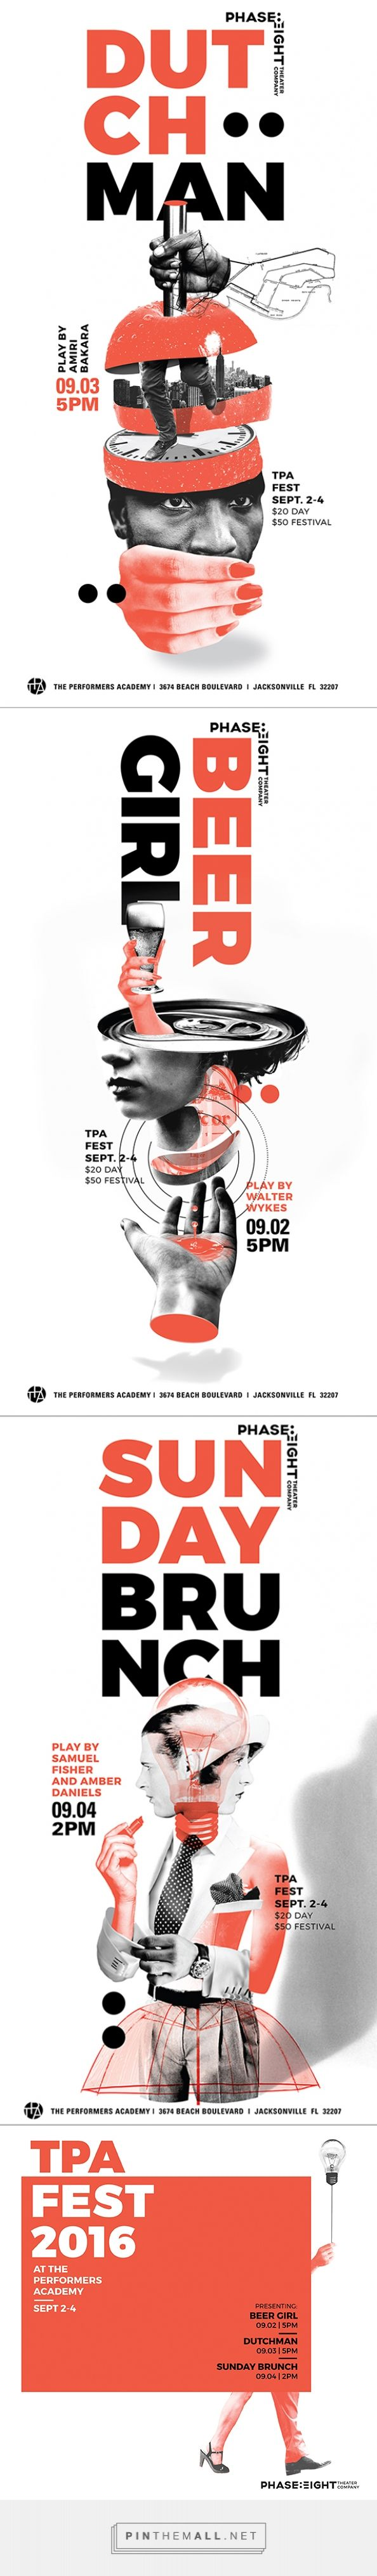 Phase Eight Poster Series on Behance